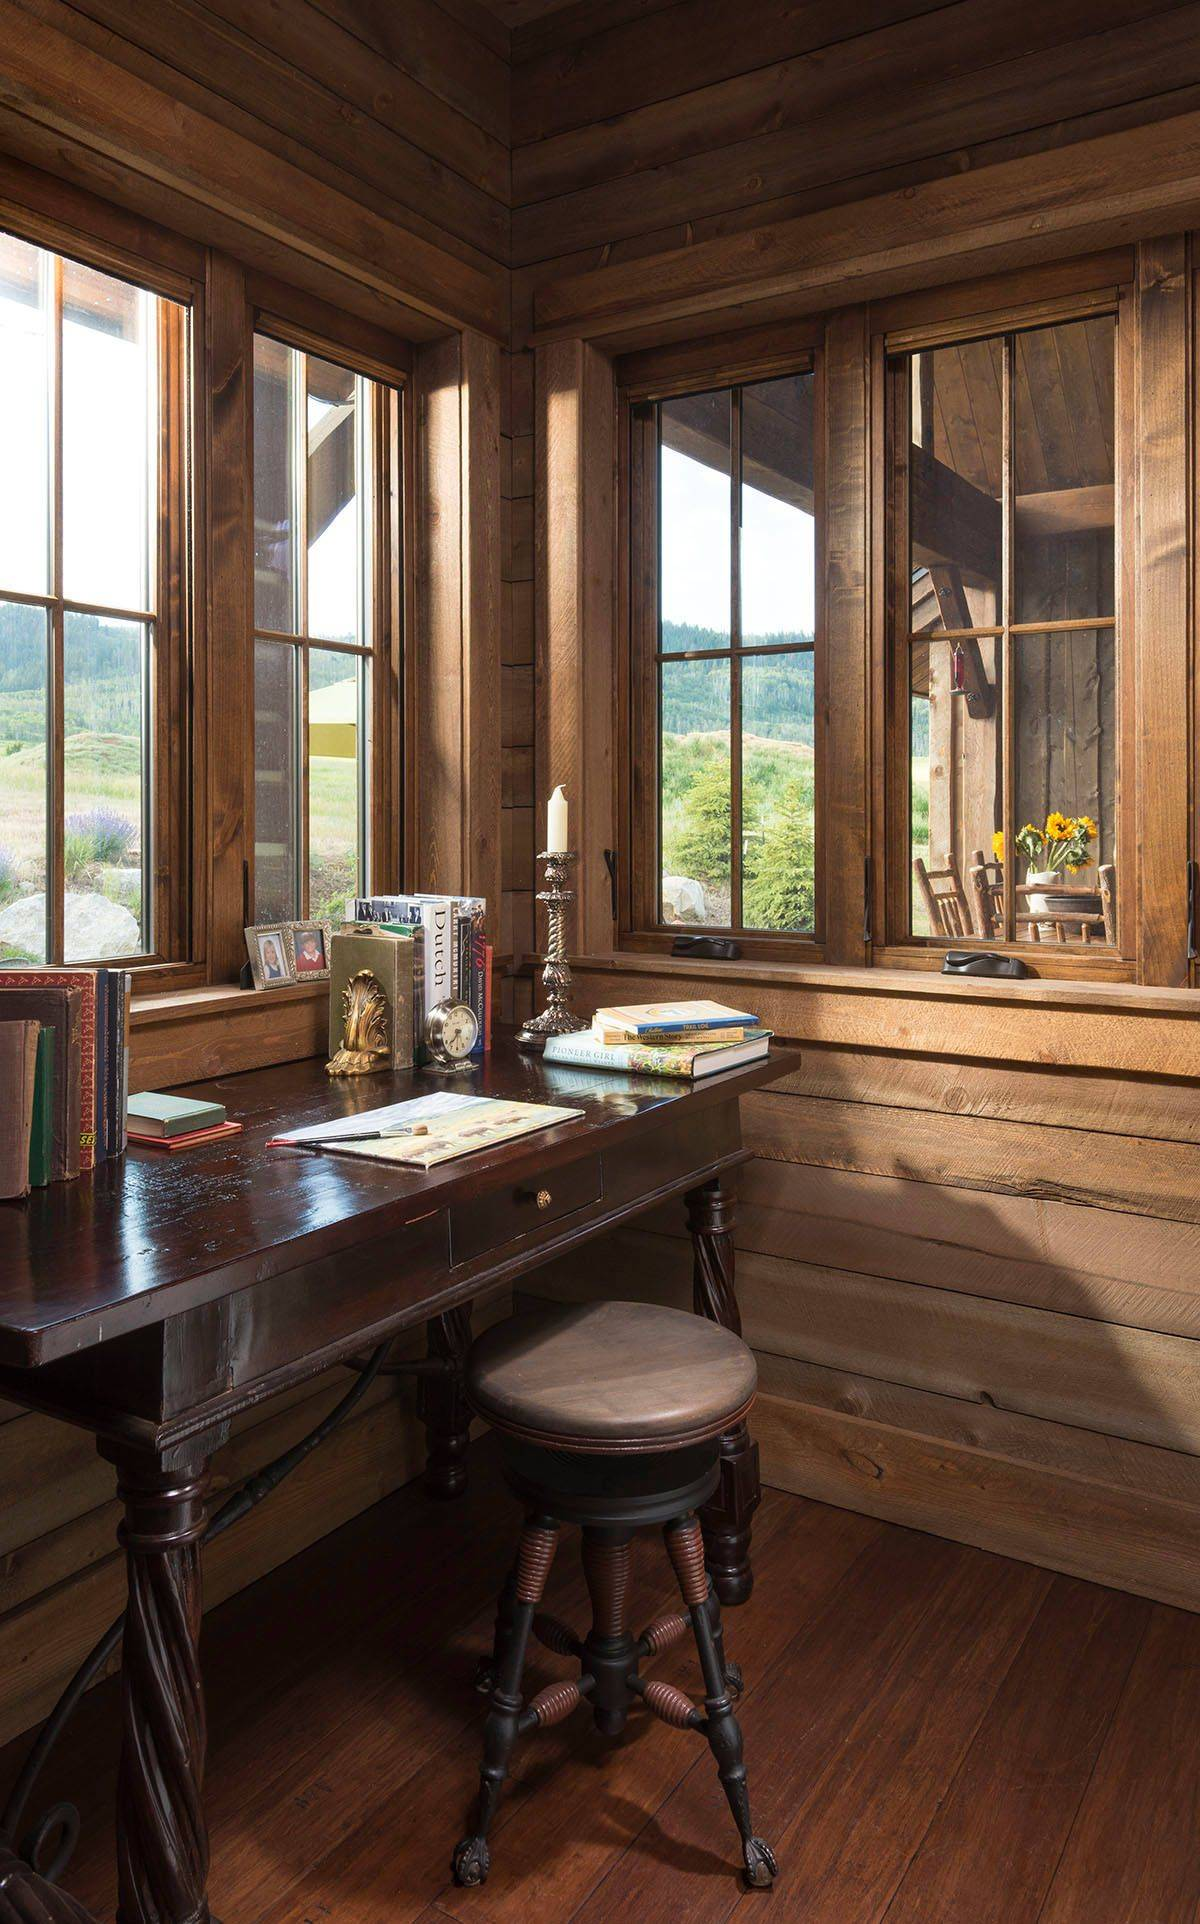 Take-in-the-views-as-you-get-things-done-while-working-from-home-52456